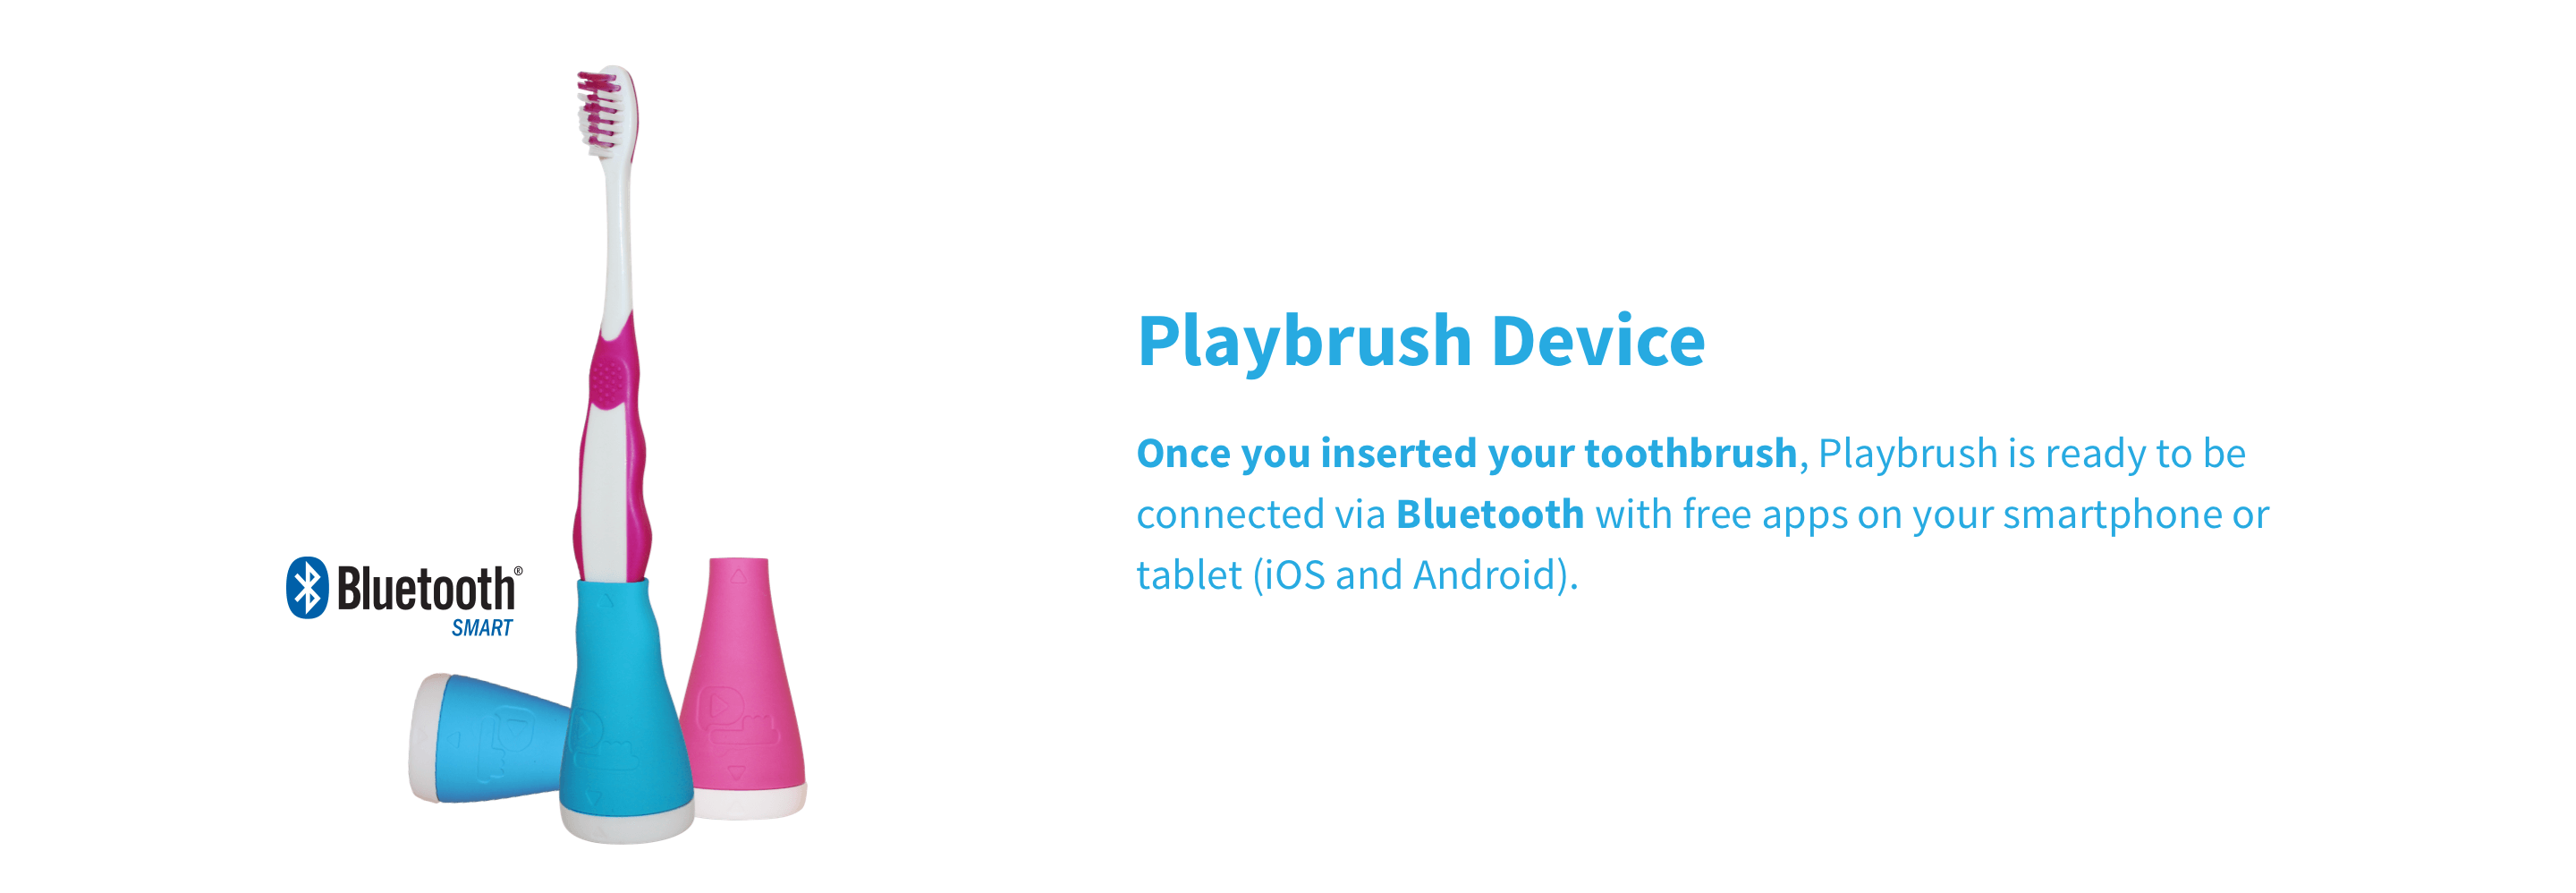 playbrush-device